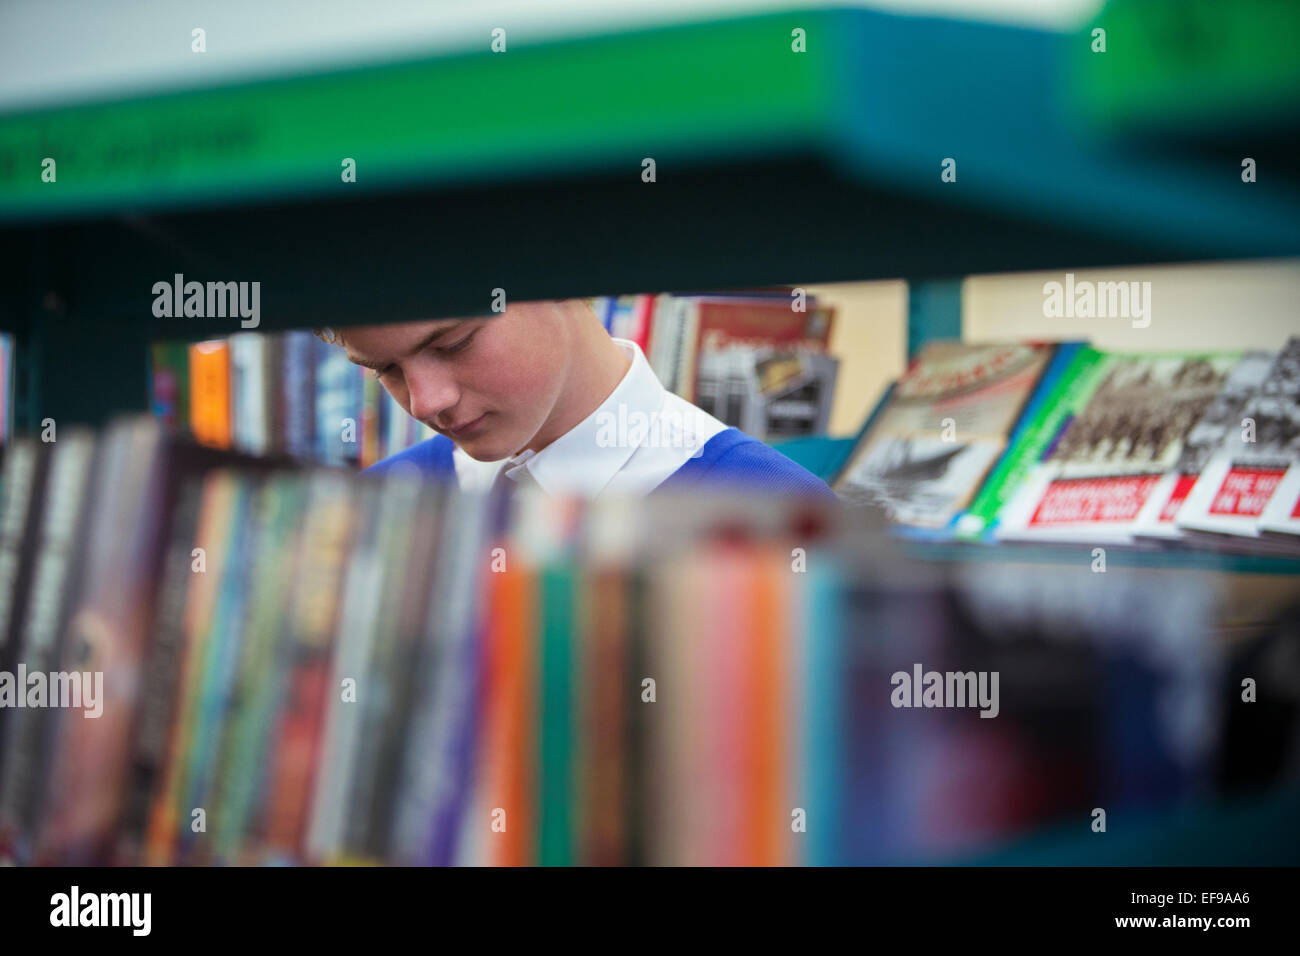 Student in library seen through book shelves - Stock Image